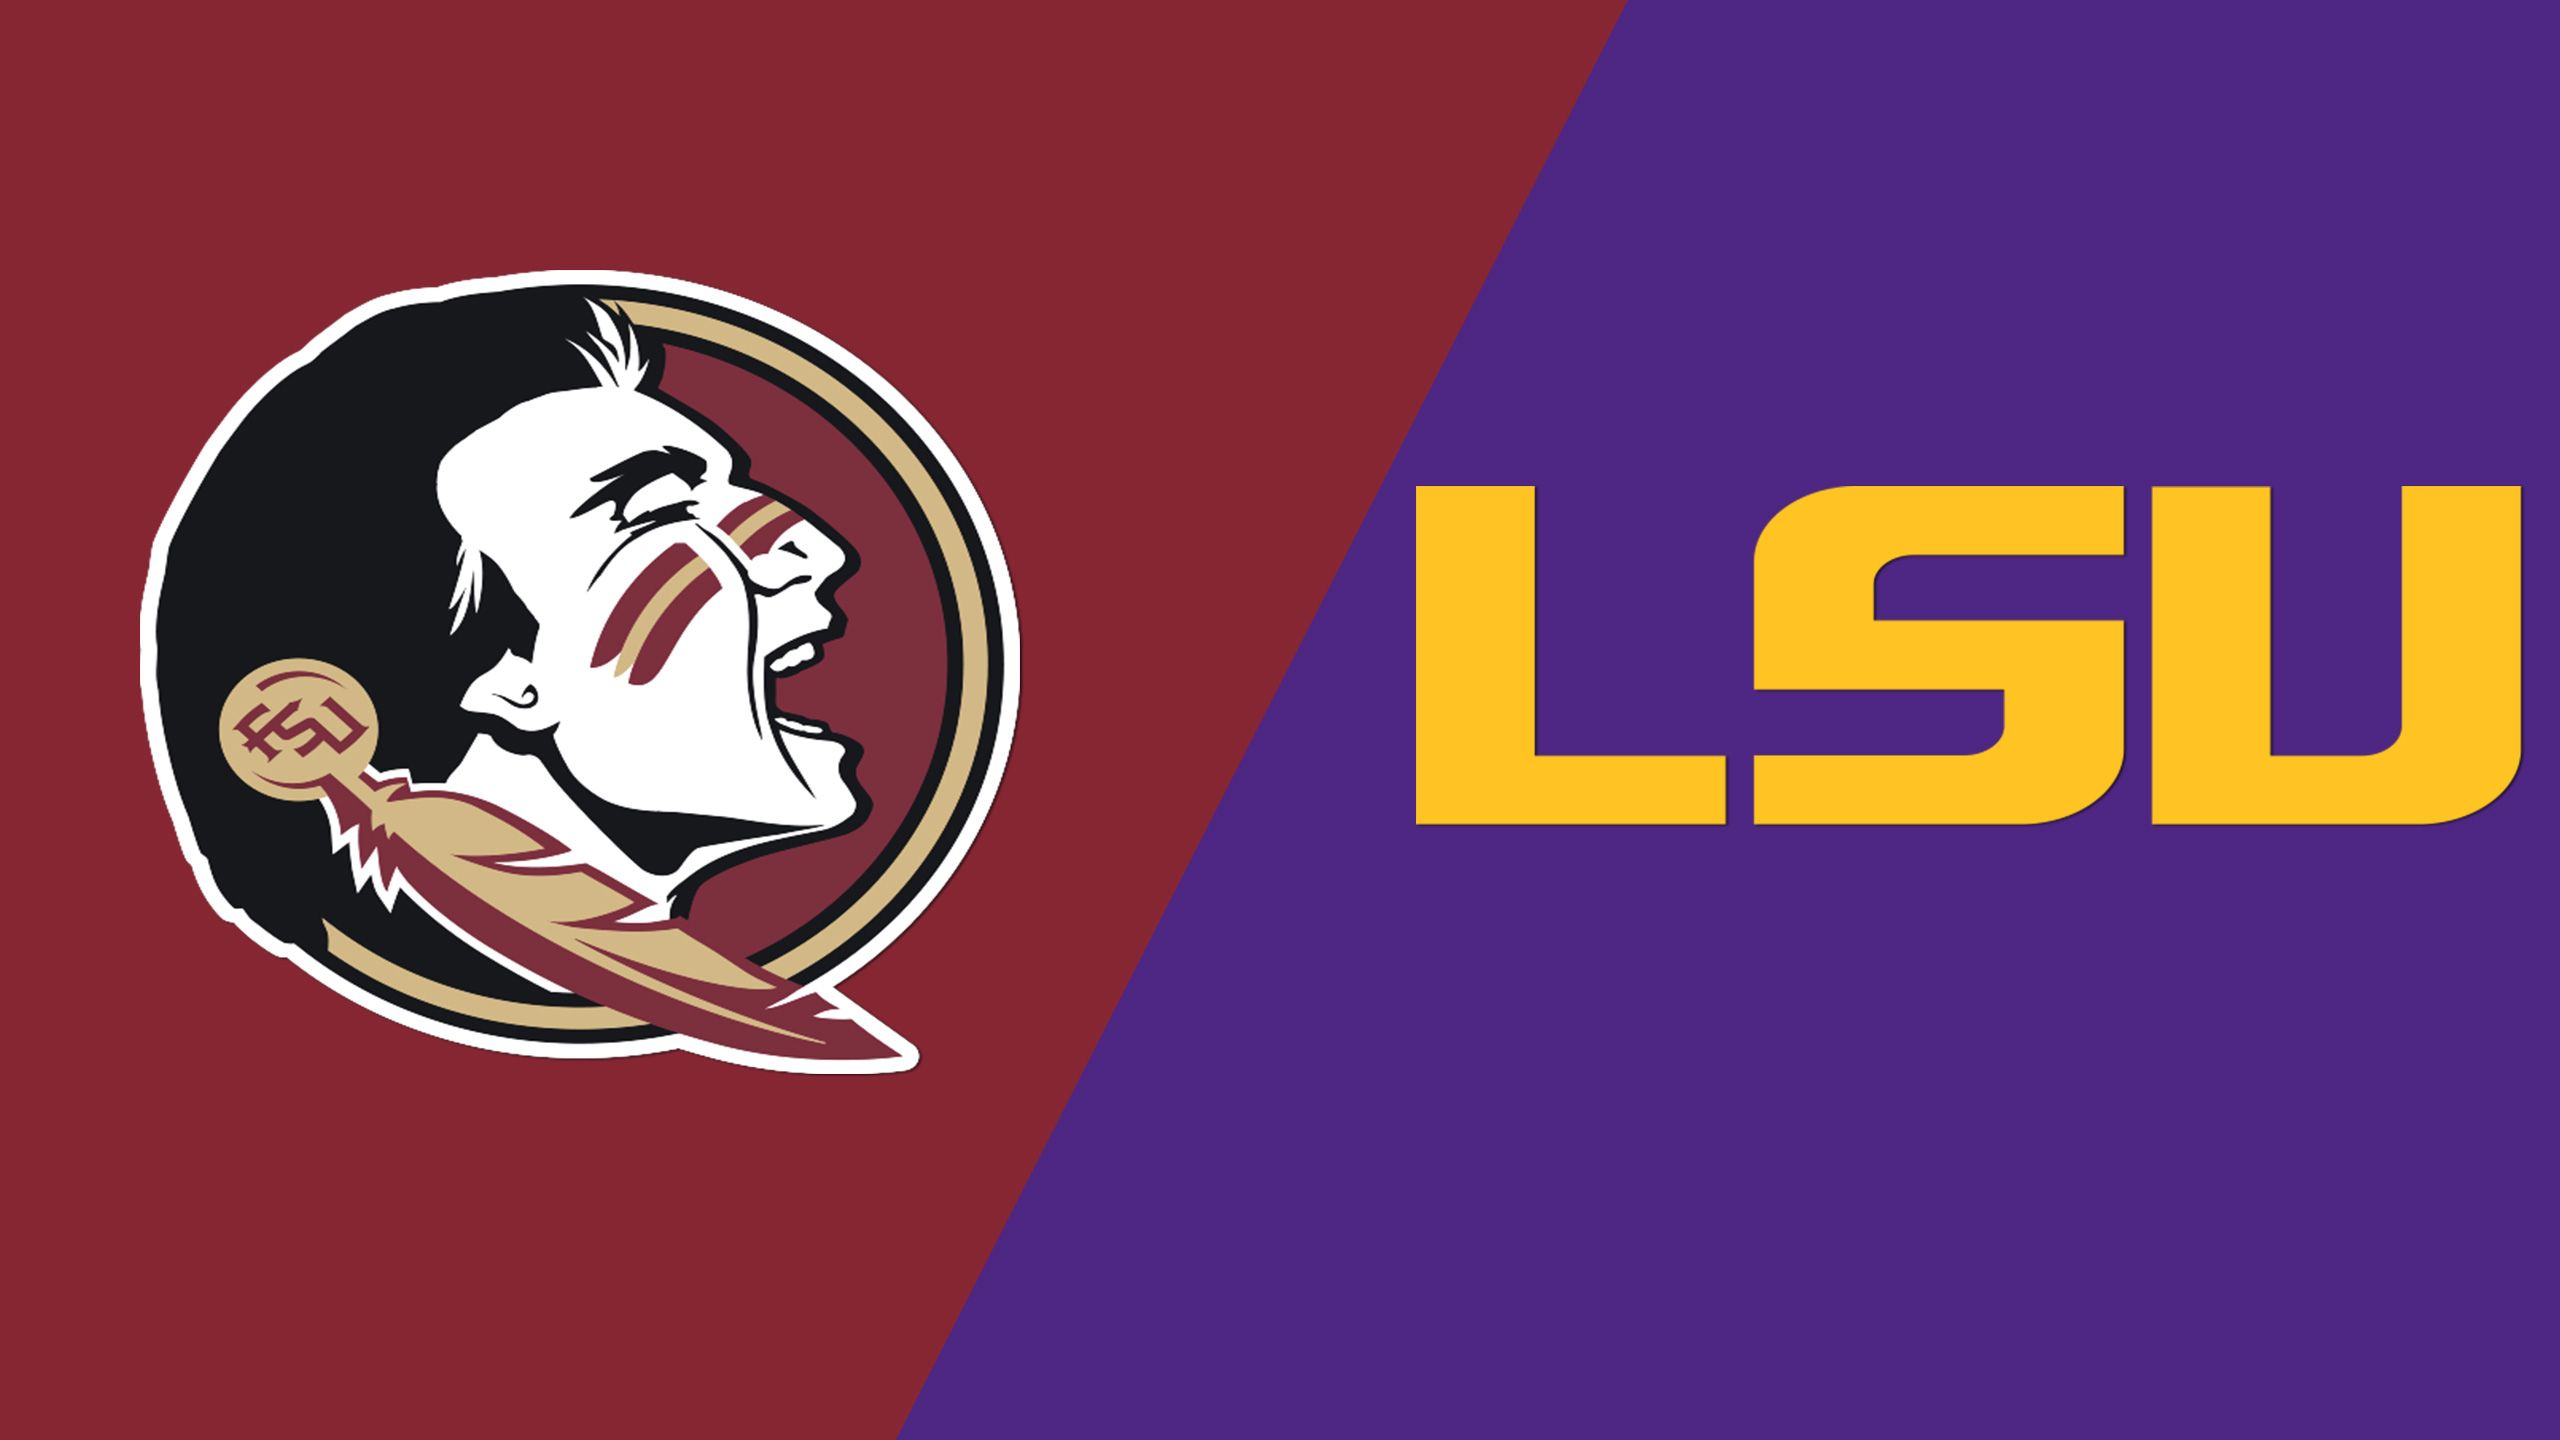 #6 Florida State vs. #11 LSU (Site 7 / Game 2) (NCAA Softball Championship)